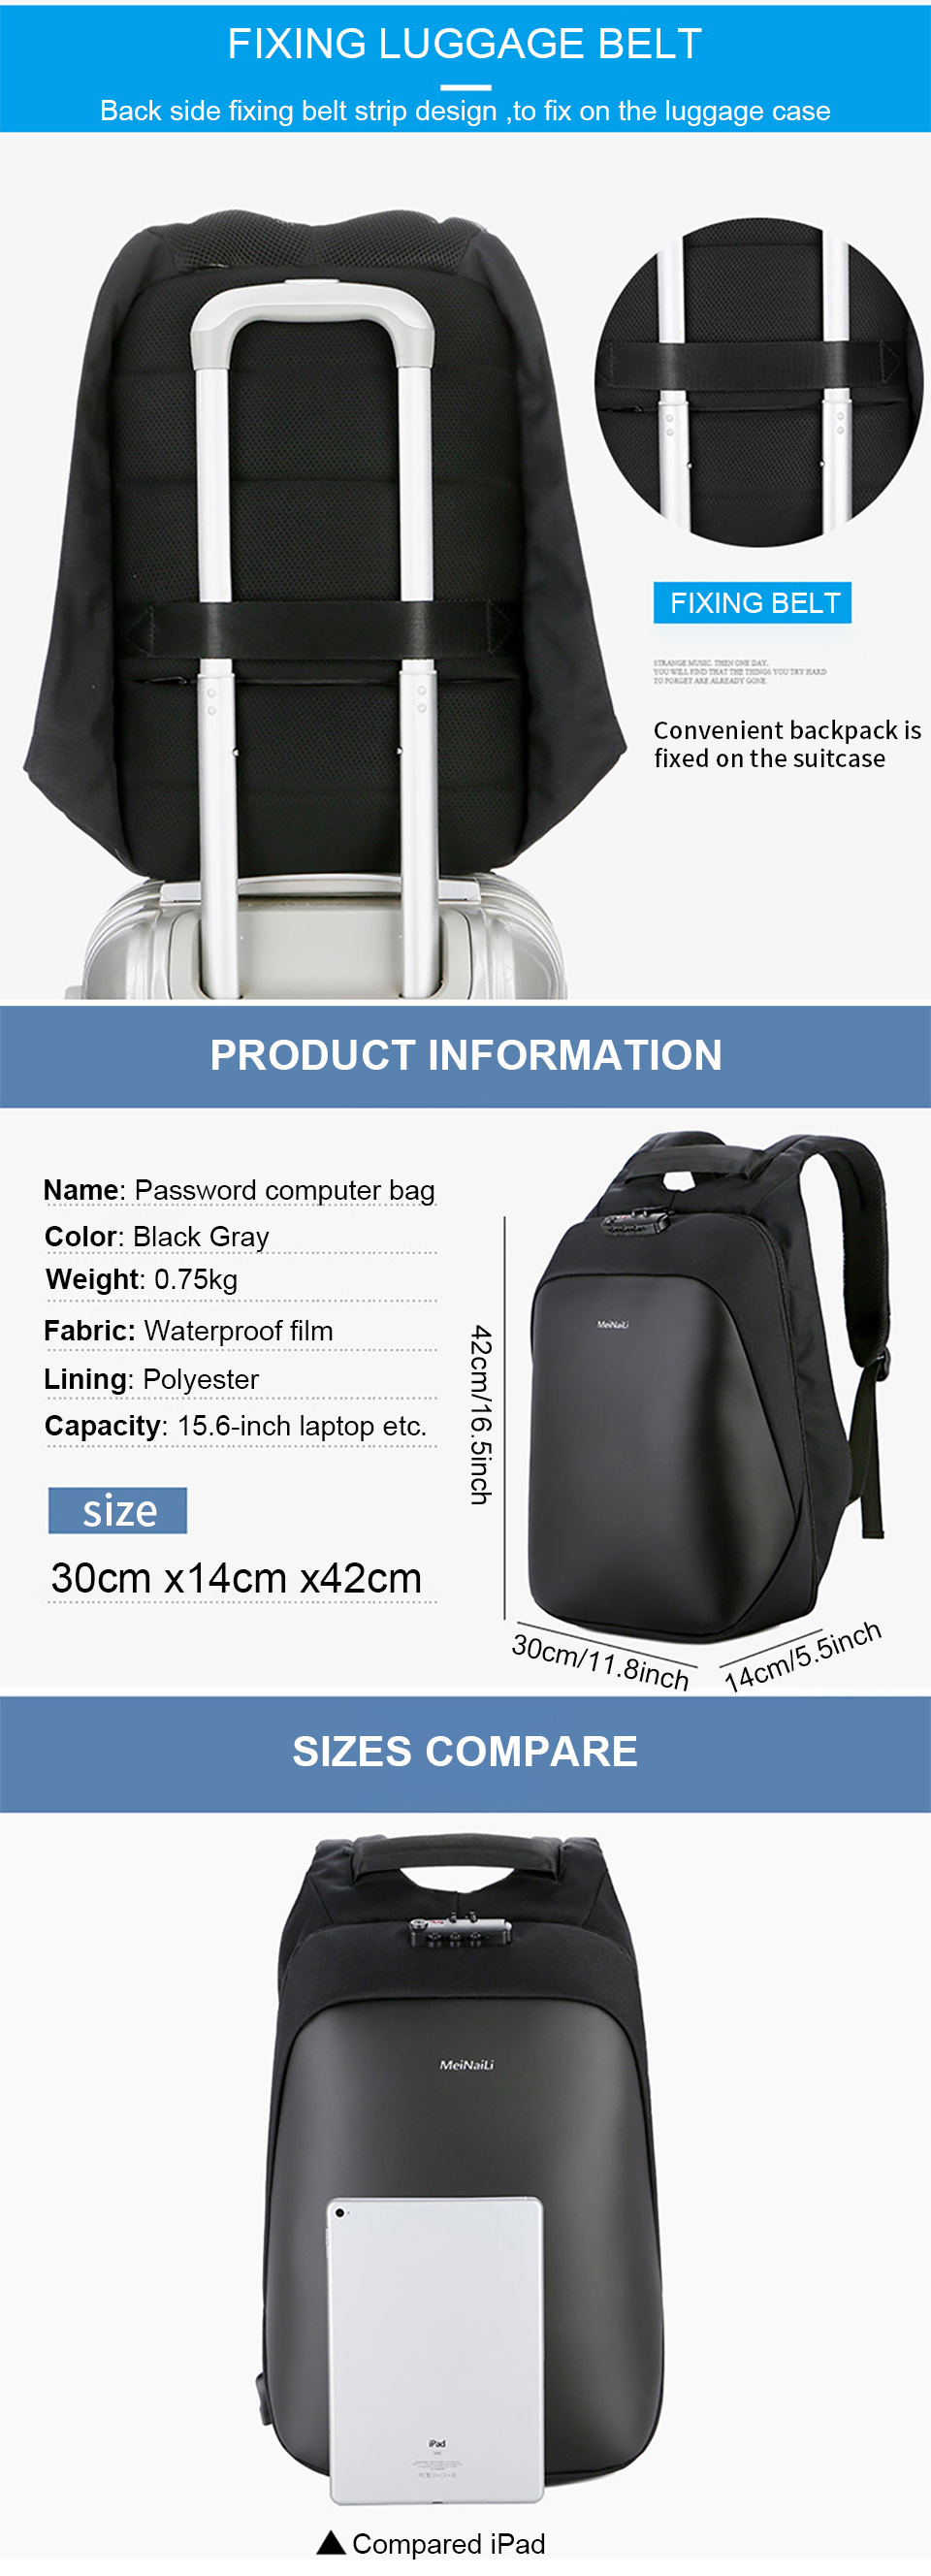 5 Anti Theft Backpacks Man Bag Large Capacity 15.6 Inch Laptop Notebook Backpack Business USB Back Pack Travel luggage Backpacking